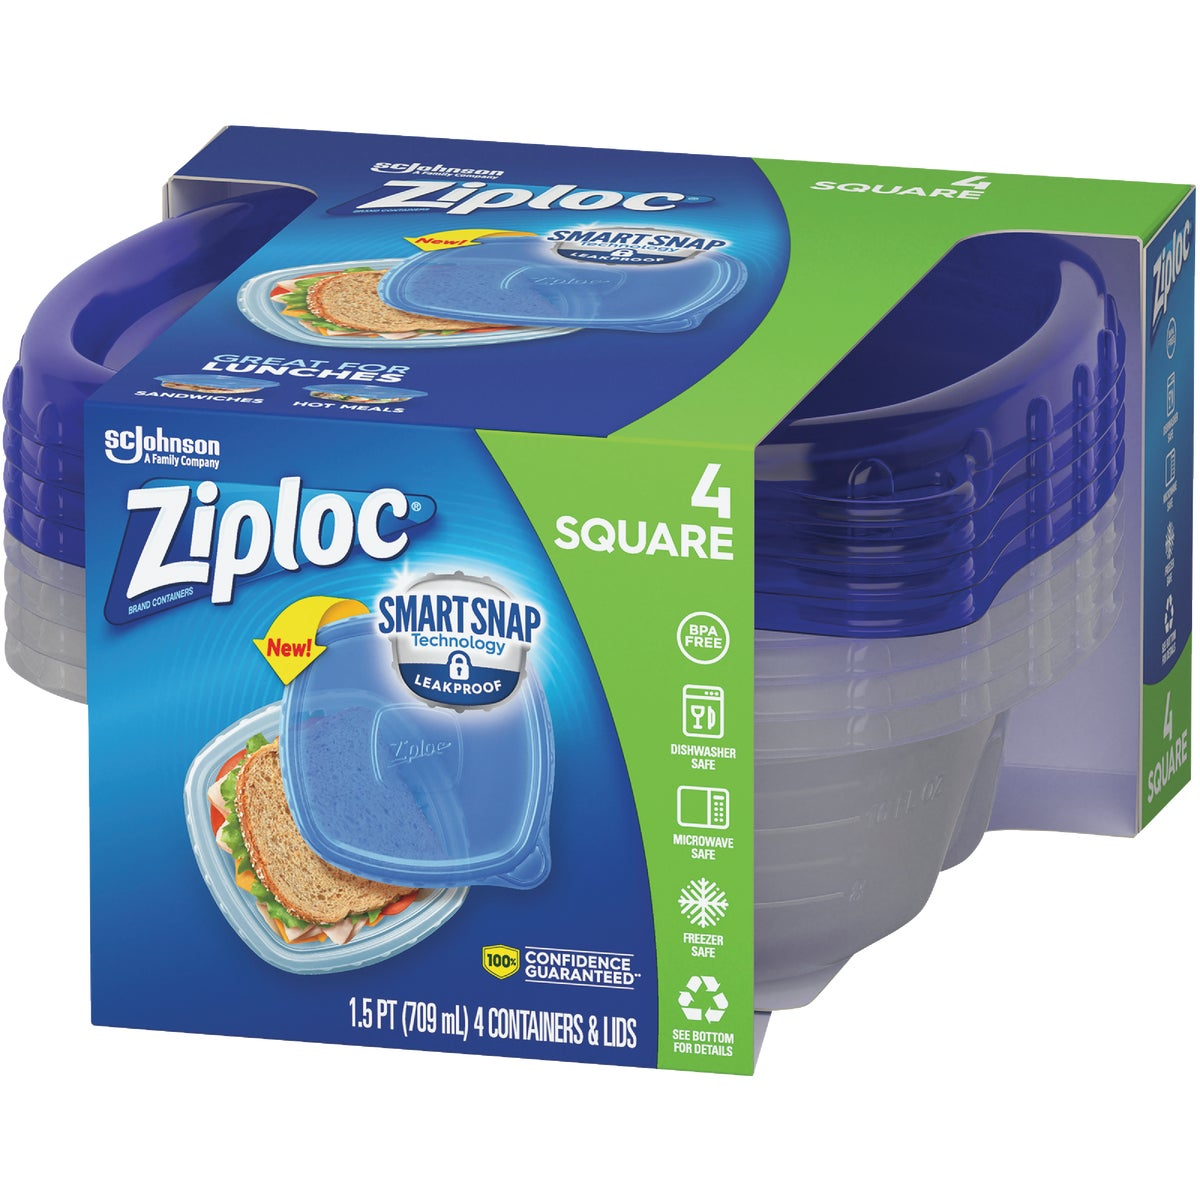 4 PACK FREEZER CONTAINER